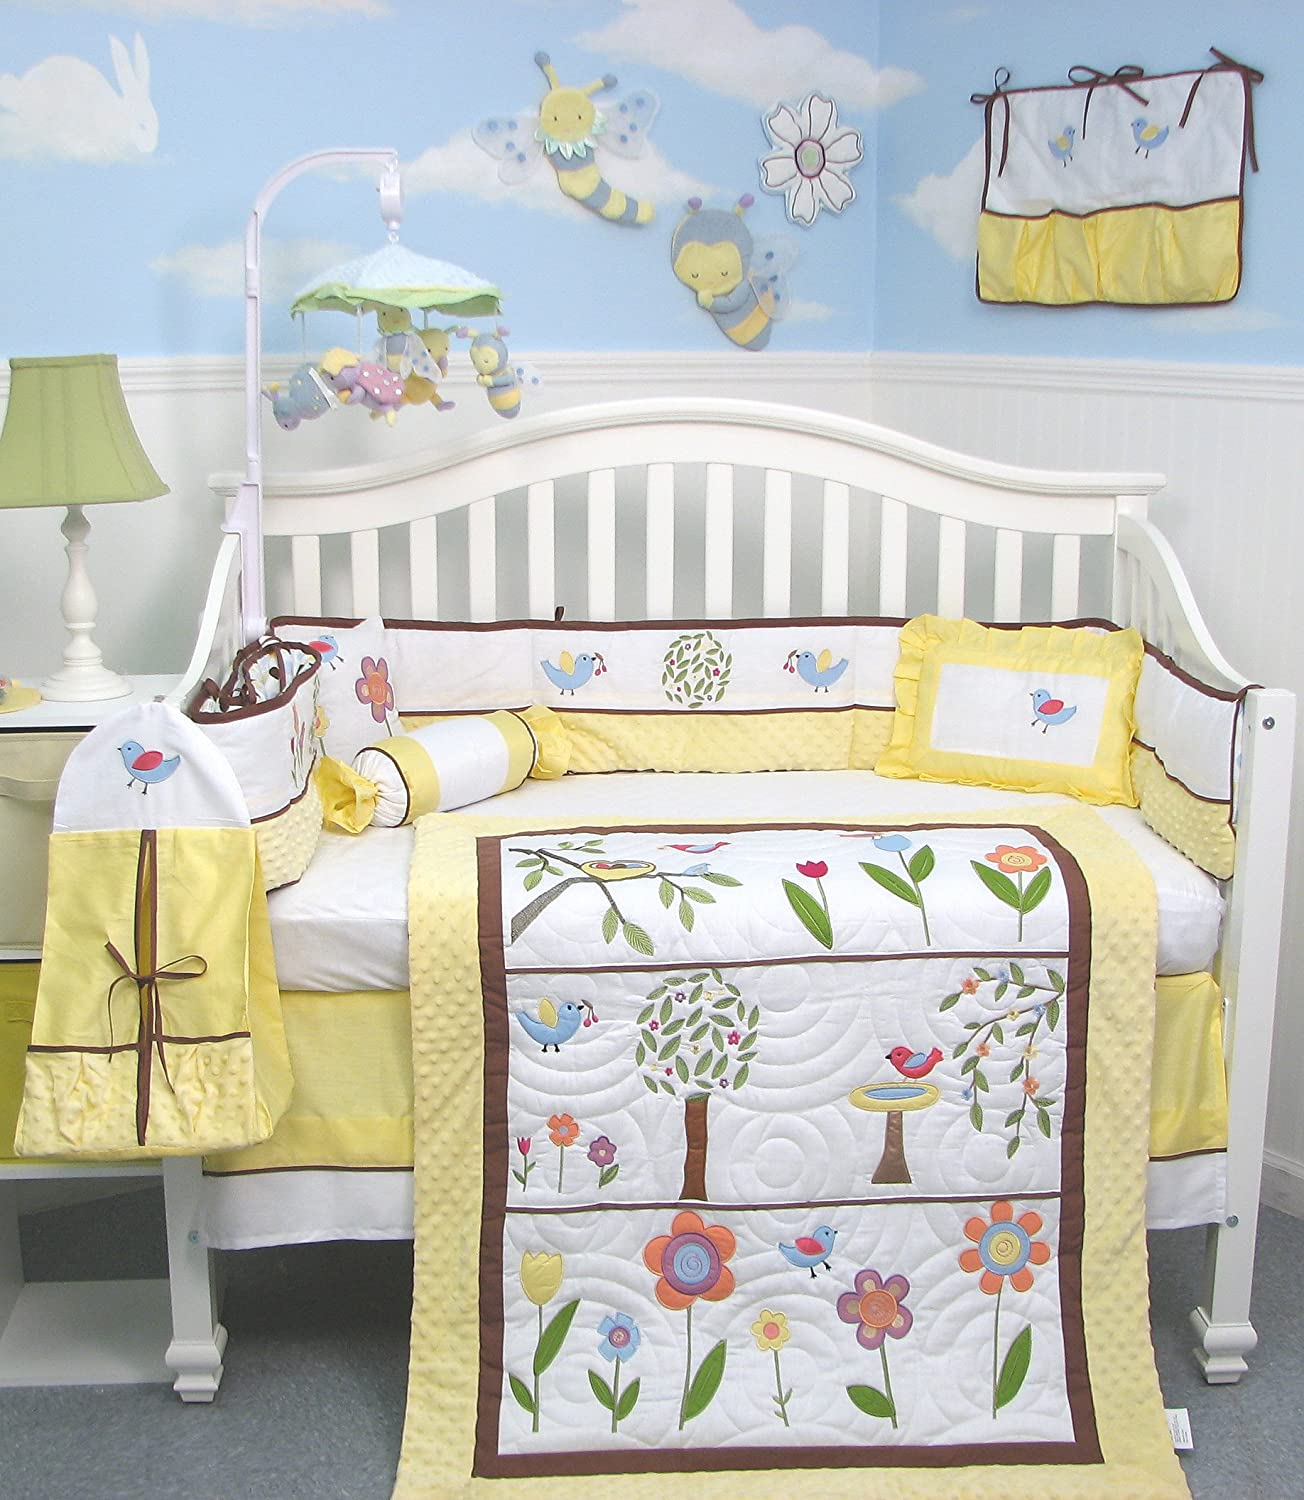 yellow baby bedding. Black Bedroom Furniture Sets. Home Design Ideas